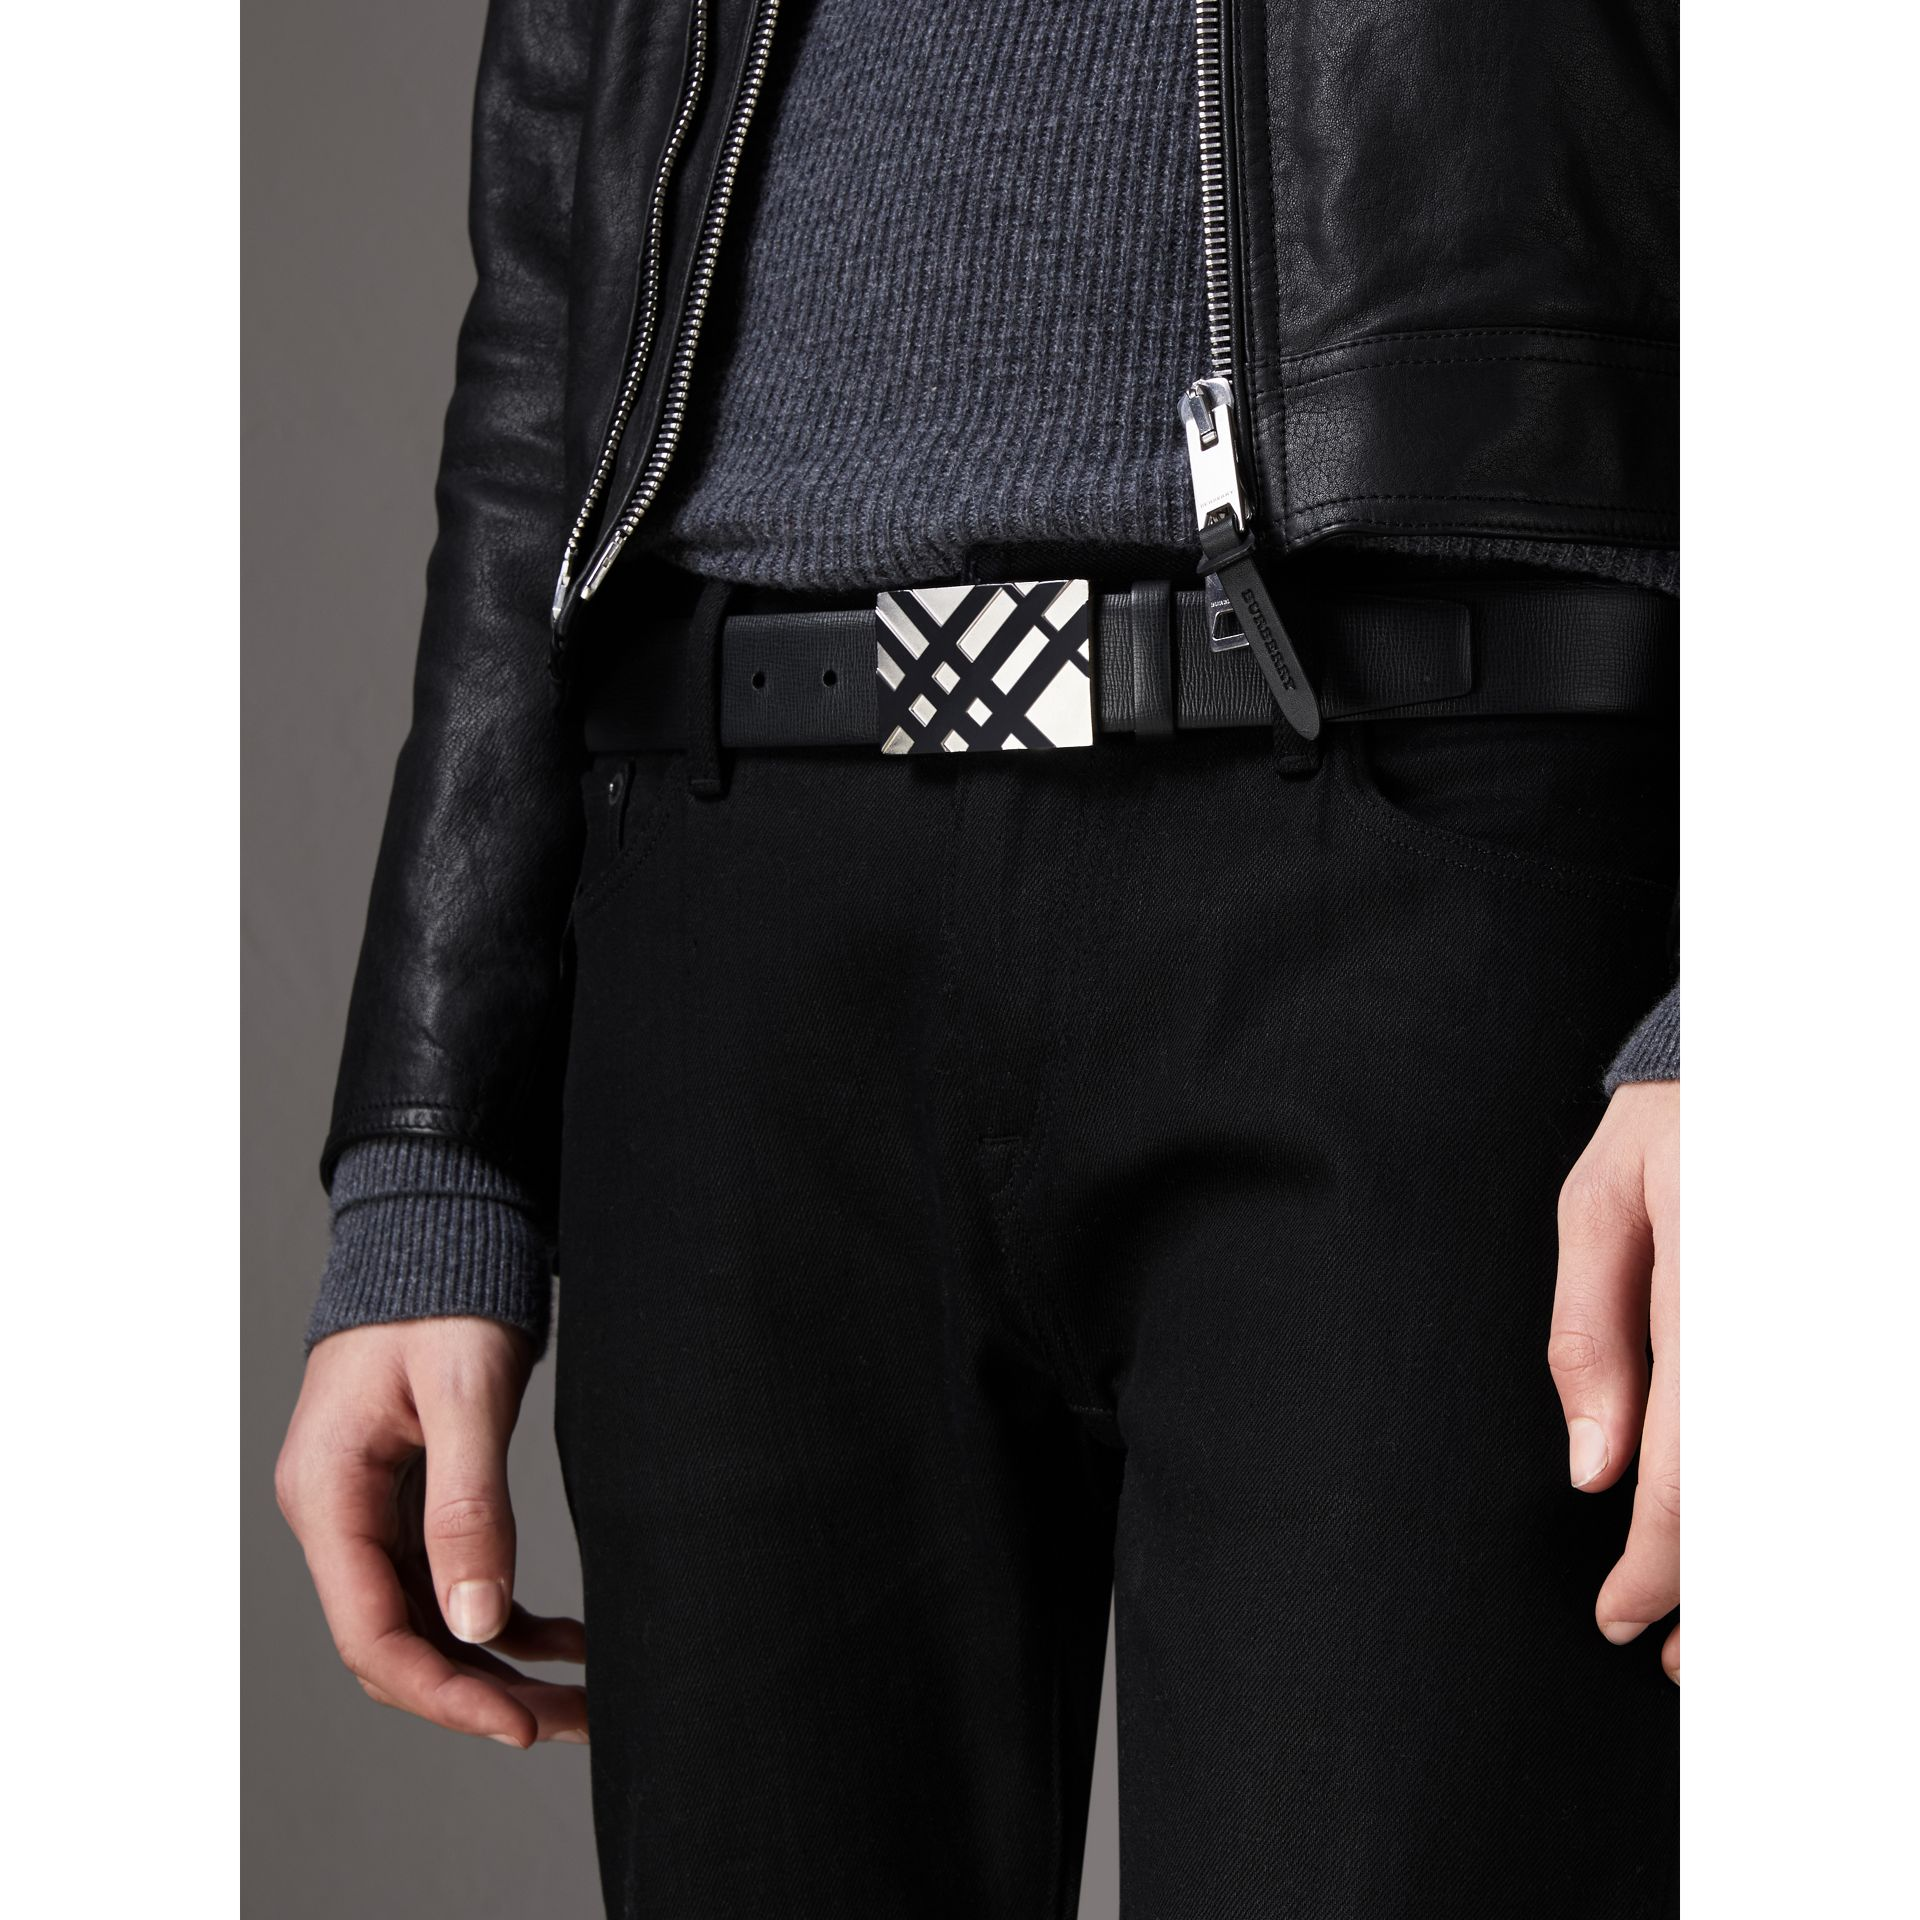 Check-embossed Buckle London Leather Belt in Black - Men | Burberry - gallery image 3